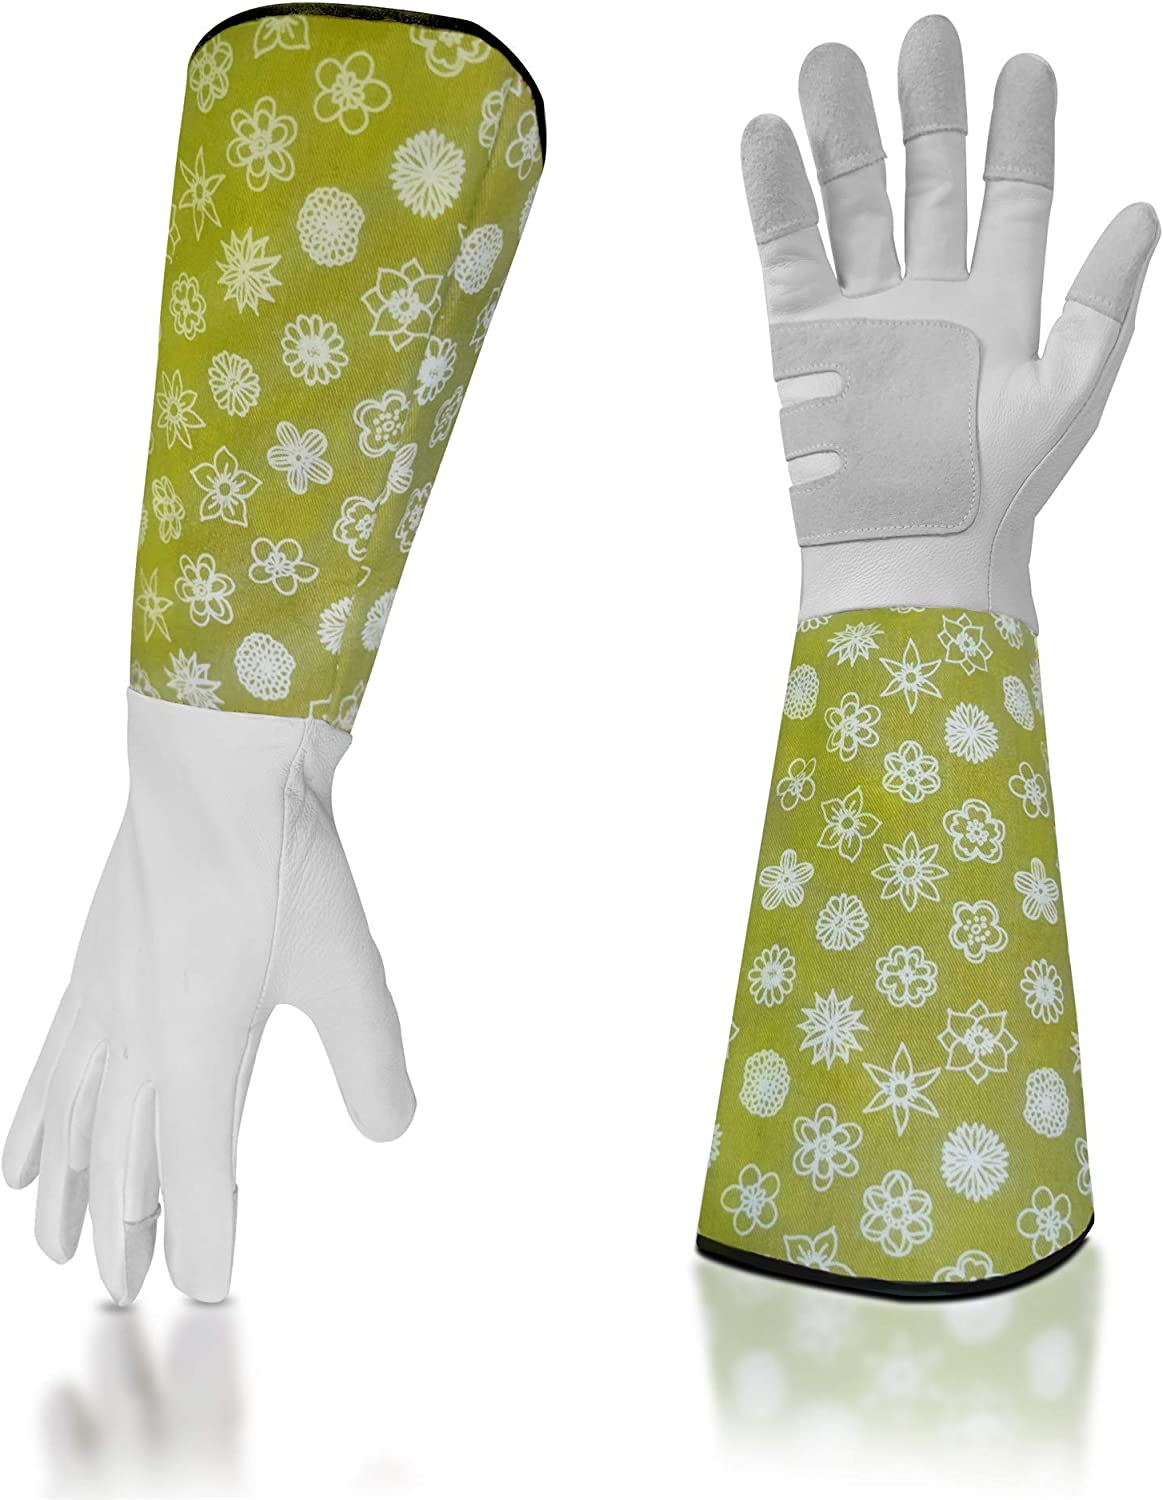 Leather-Gardening-Gloves for Women/Men - Rose/Blackberry Pruning Thorn Proof Heavy Duty Gloves Goatskin Leather Gloves Thick Palm Gauntlet Garden Work Gloves with Forearm Protection -Flower